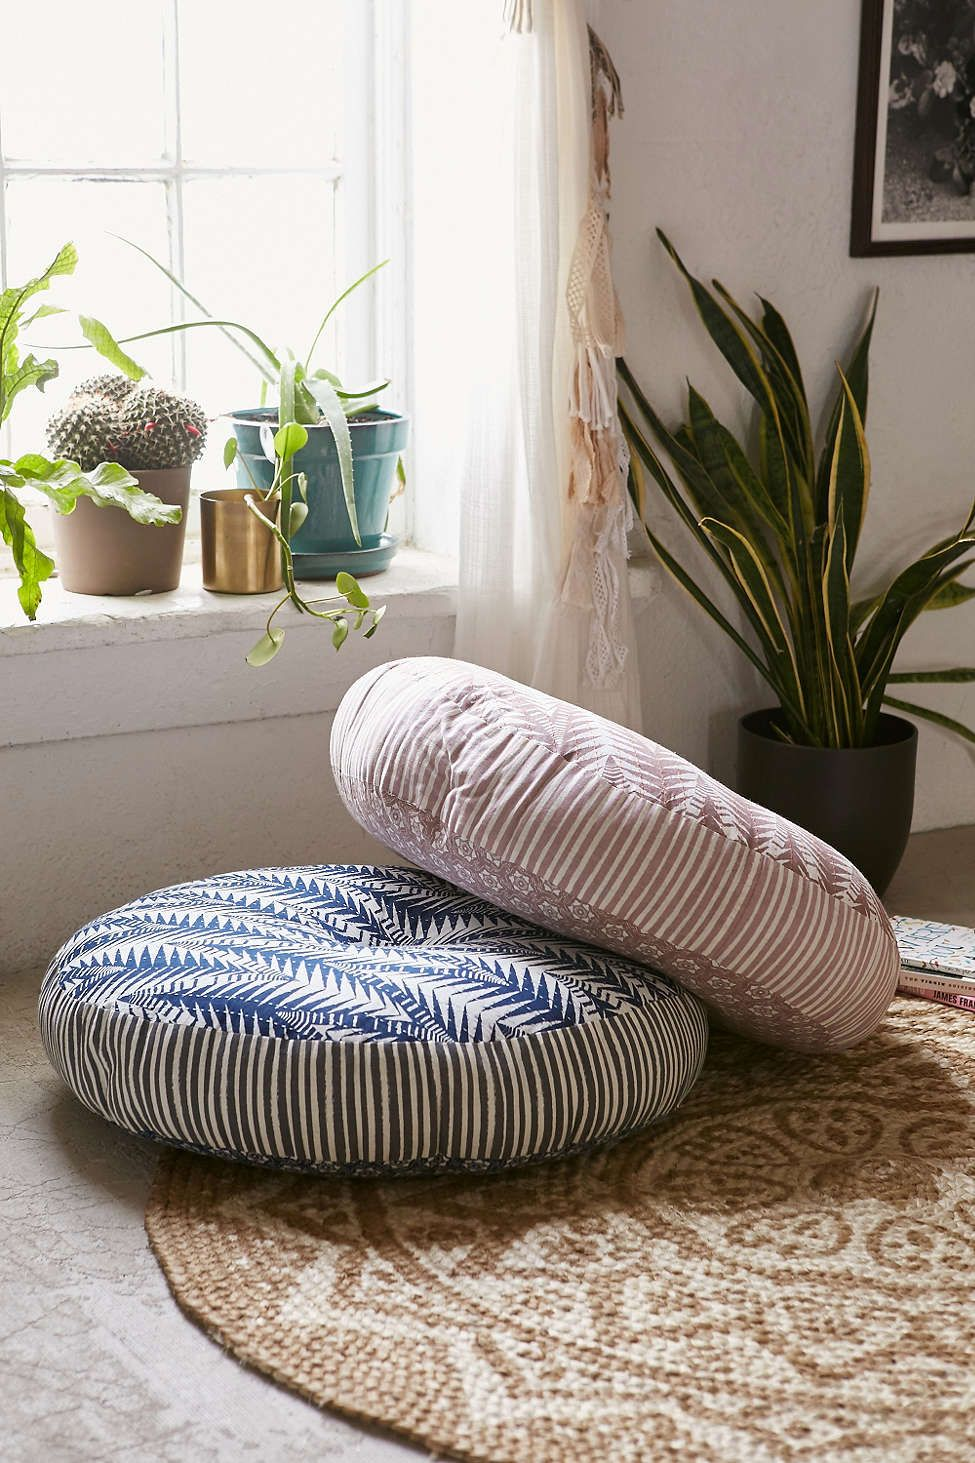 Magical Thinking Pilpil Mixed Pattern Floor Pillow Patterned Floor Pillows Sewing Room Inspiration Floor Pillows